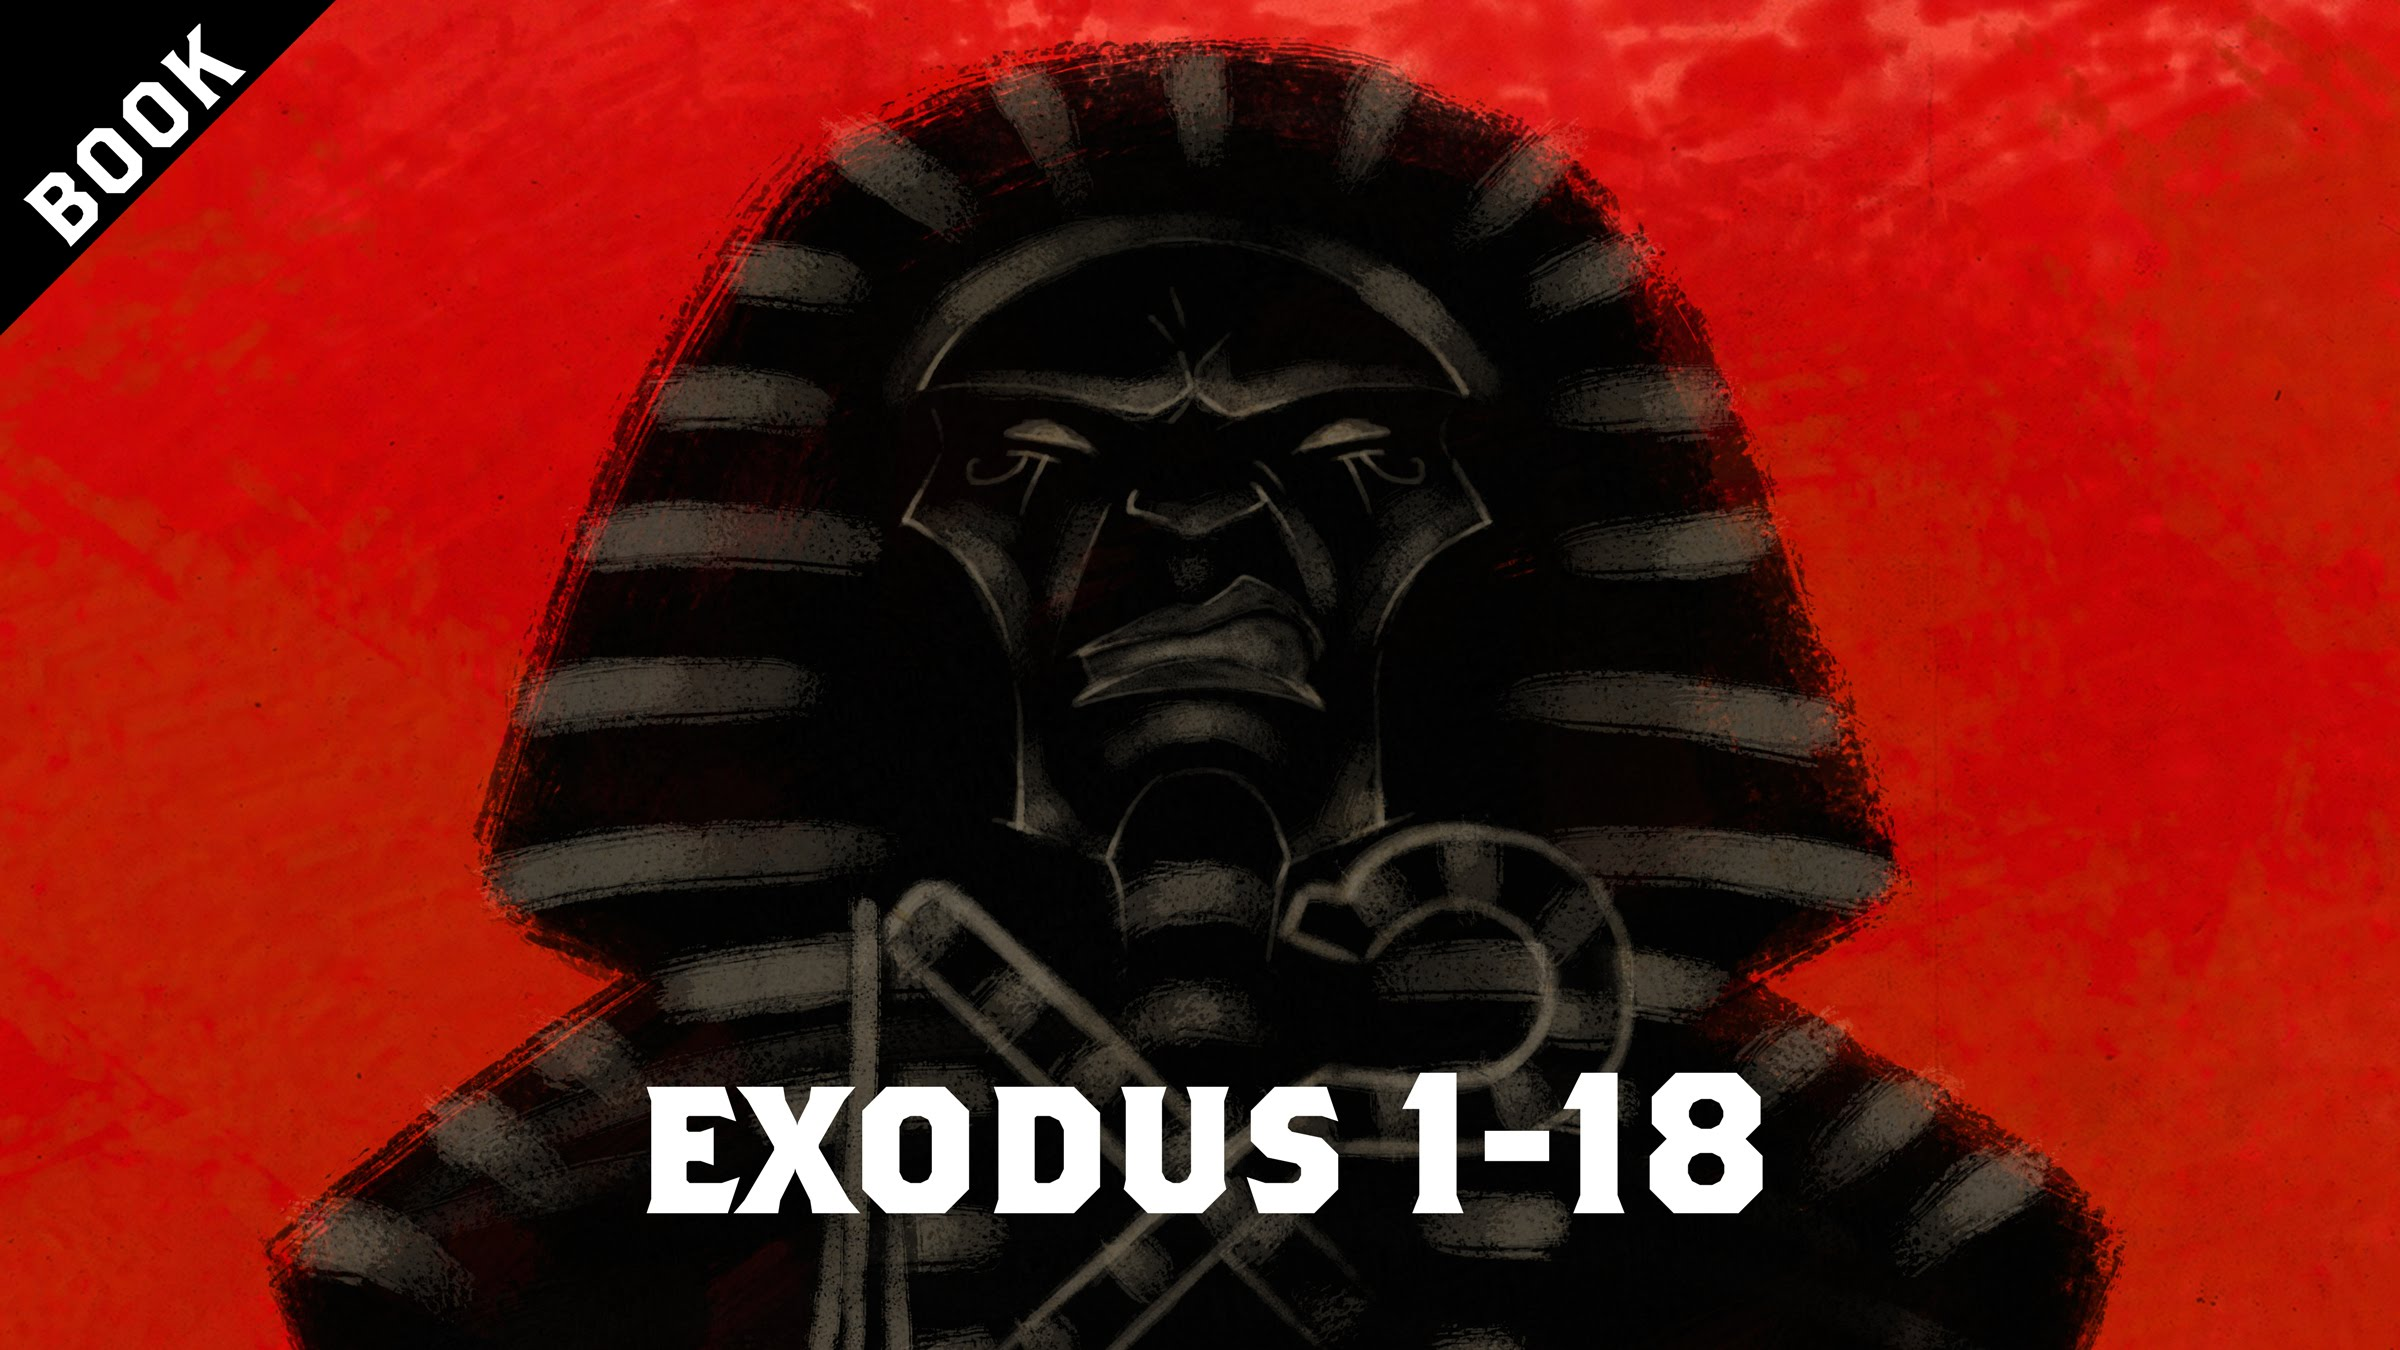 The Book of Exodus Overview – Part 1 of 2